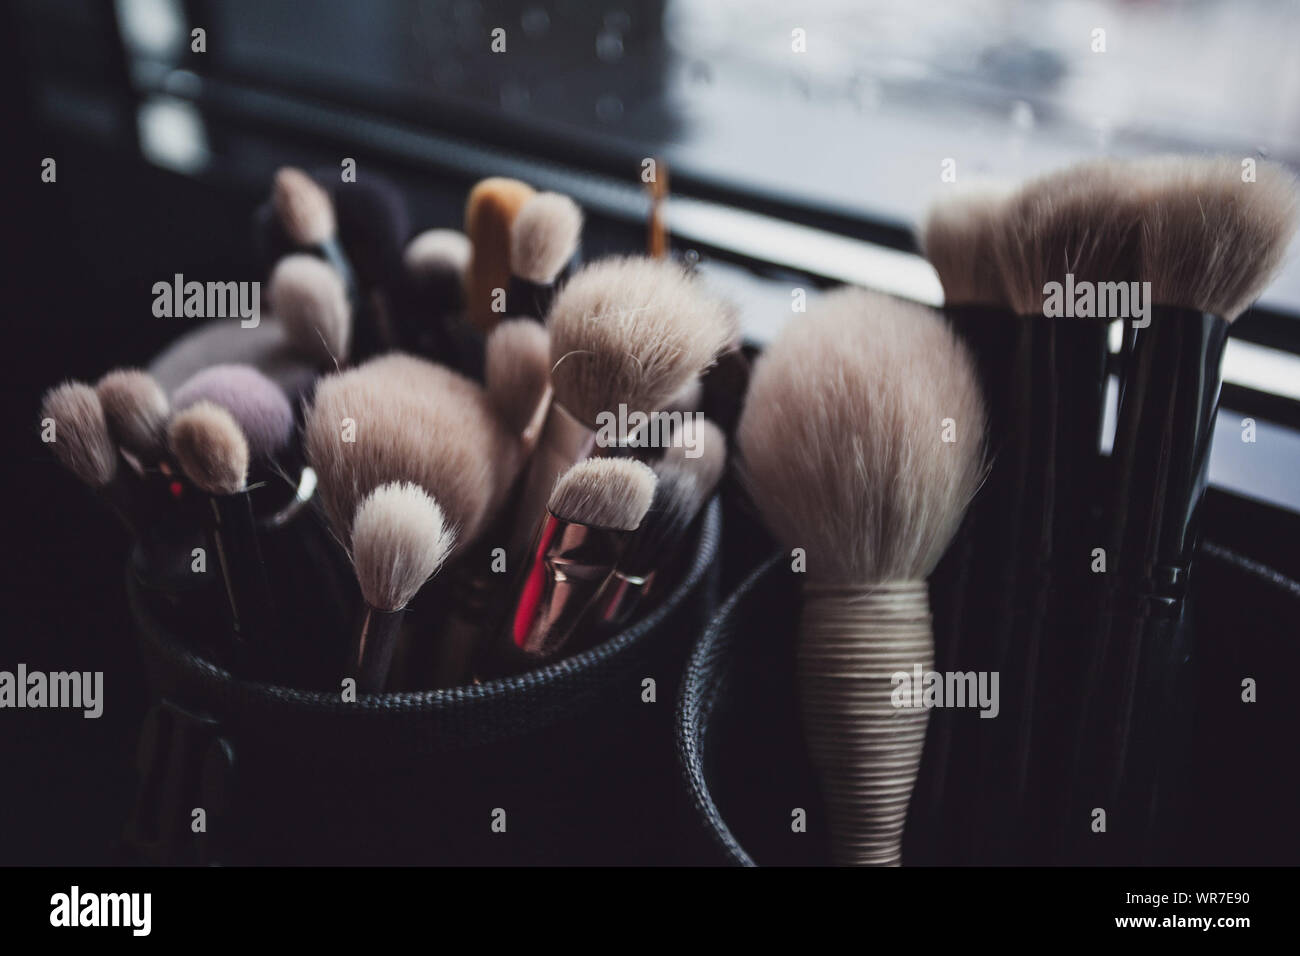 Make-up-Pinsel in Containern Stockfoto